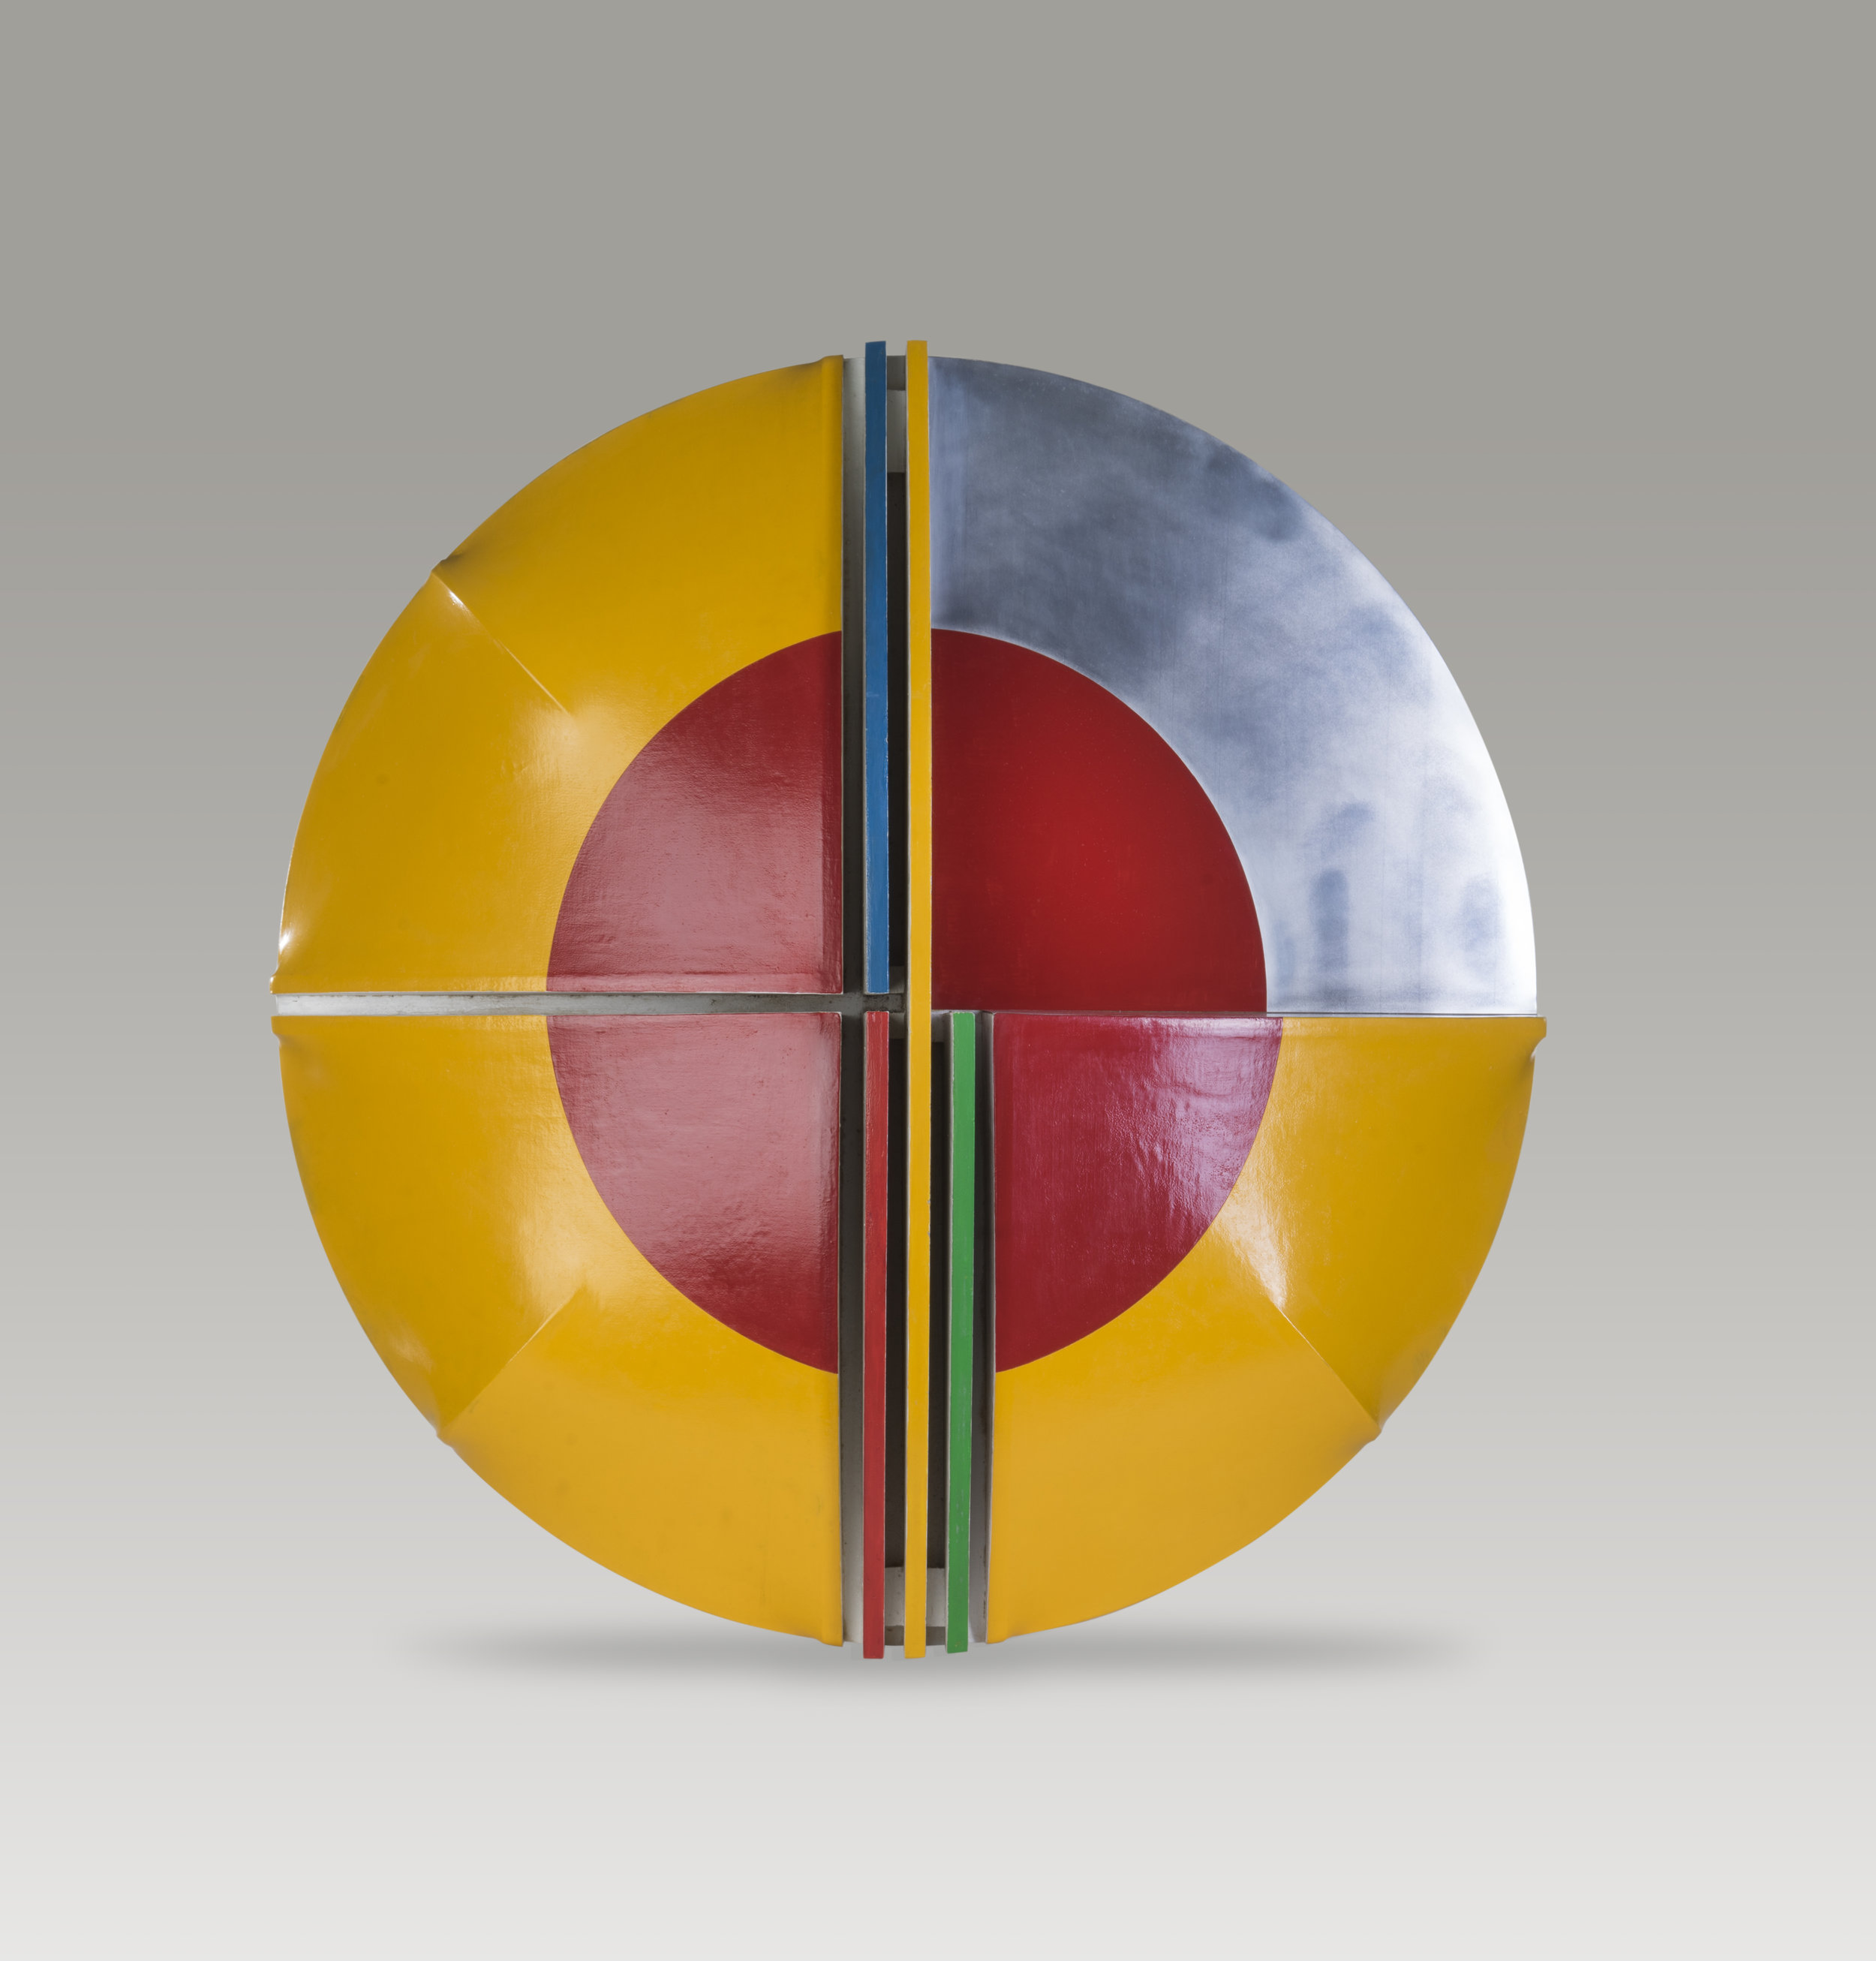 Fred Troller ,  Yellow Shield,  c. 1960, acrylic on shaped canvas, 70 3/4 x 11 x 7 3/4 inches